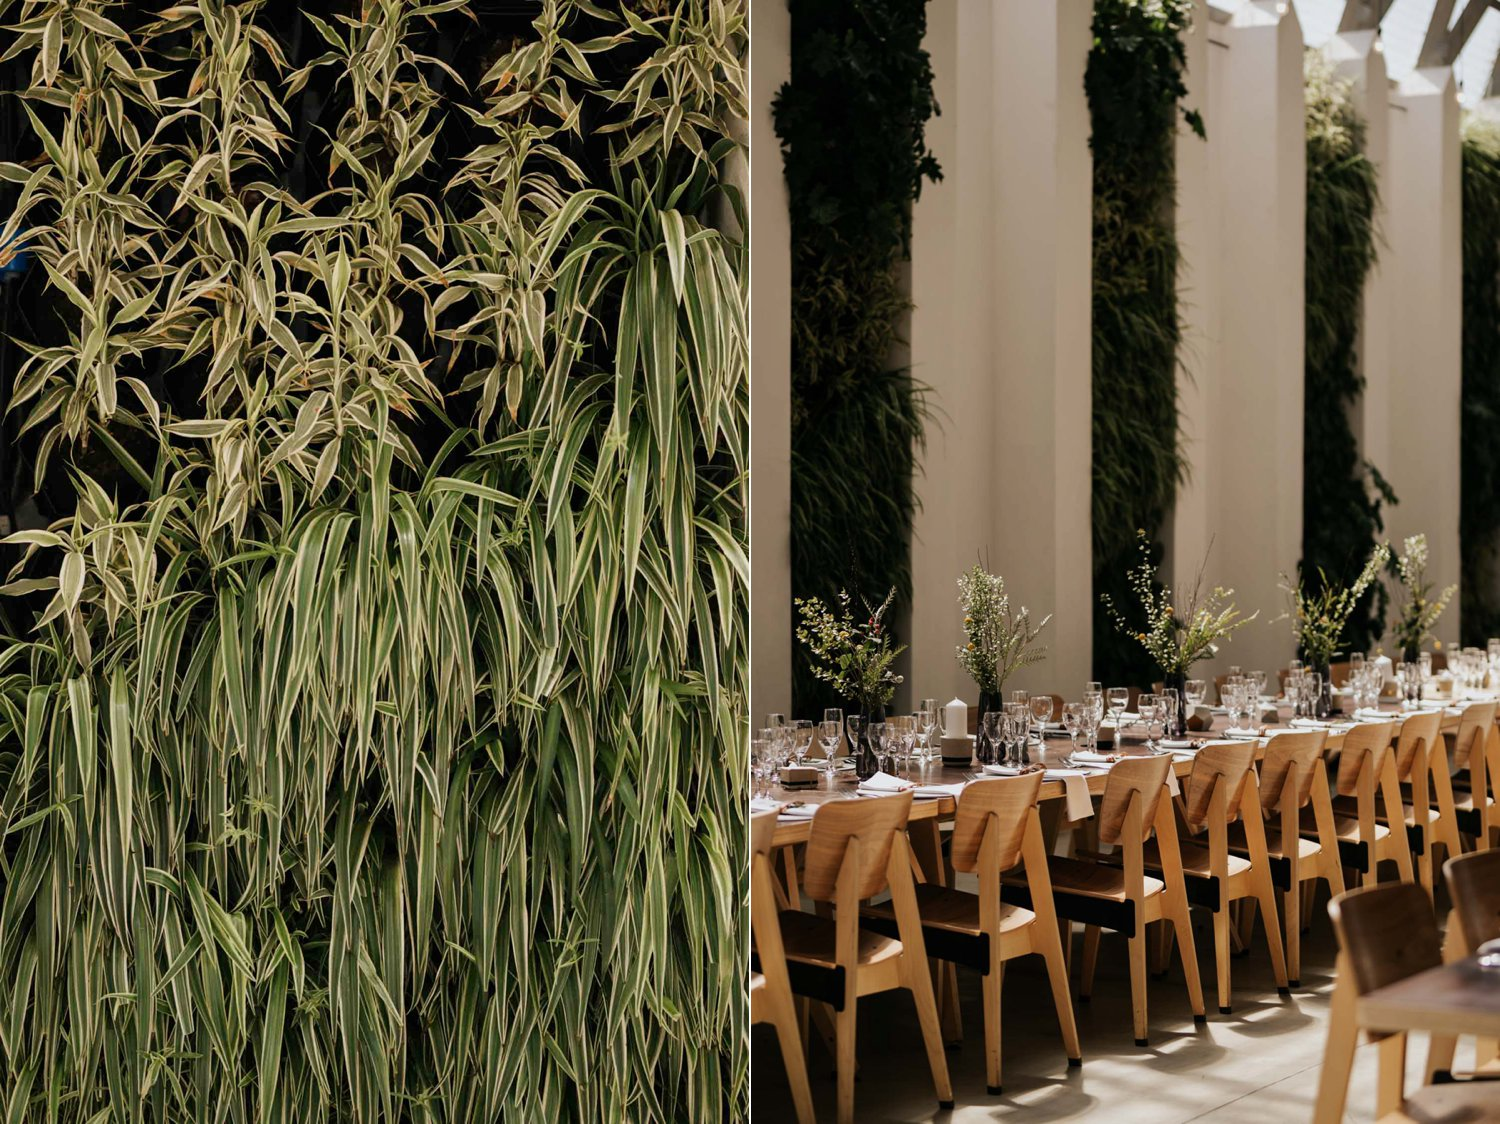 Hanging wall plants and lush greenery for wedding decor at Greenhouse Cafe